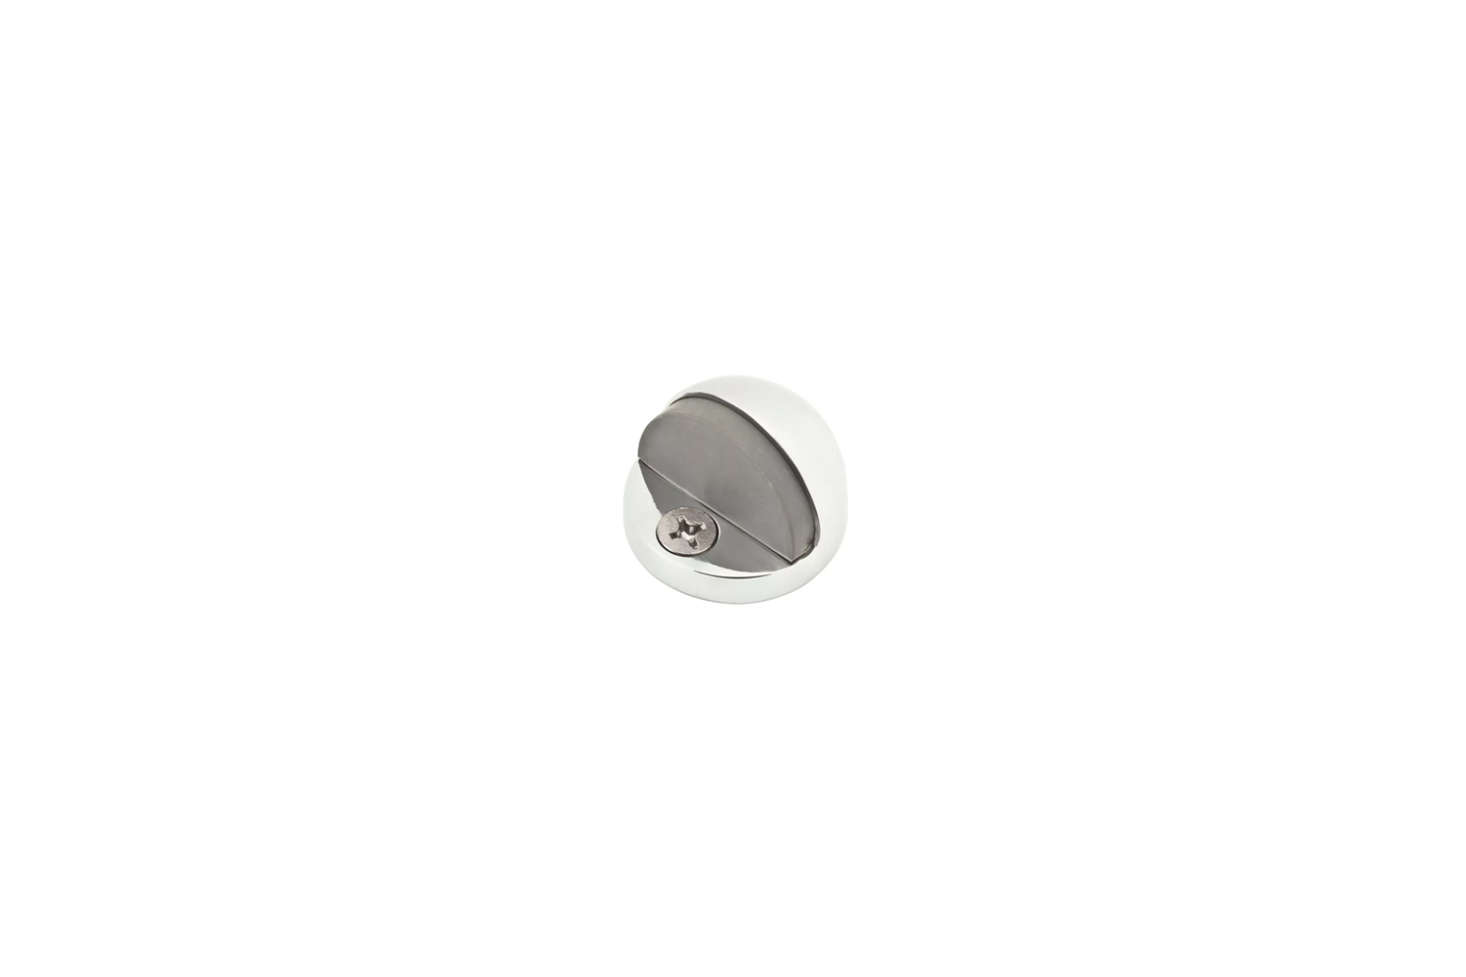 The Baldwin Door Stop (9BR7008003), shown in Polished Chrome, is $8.46 at Build.com.